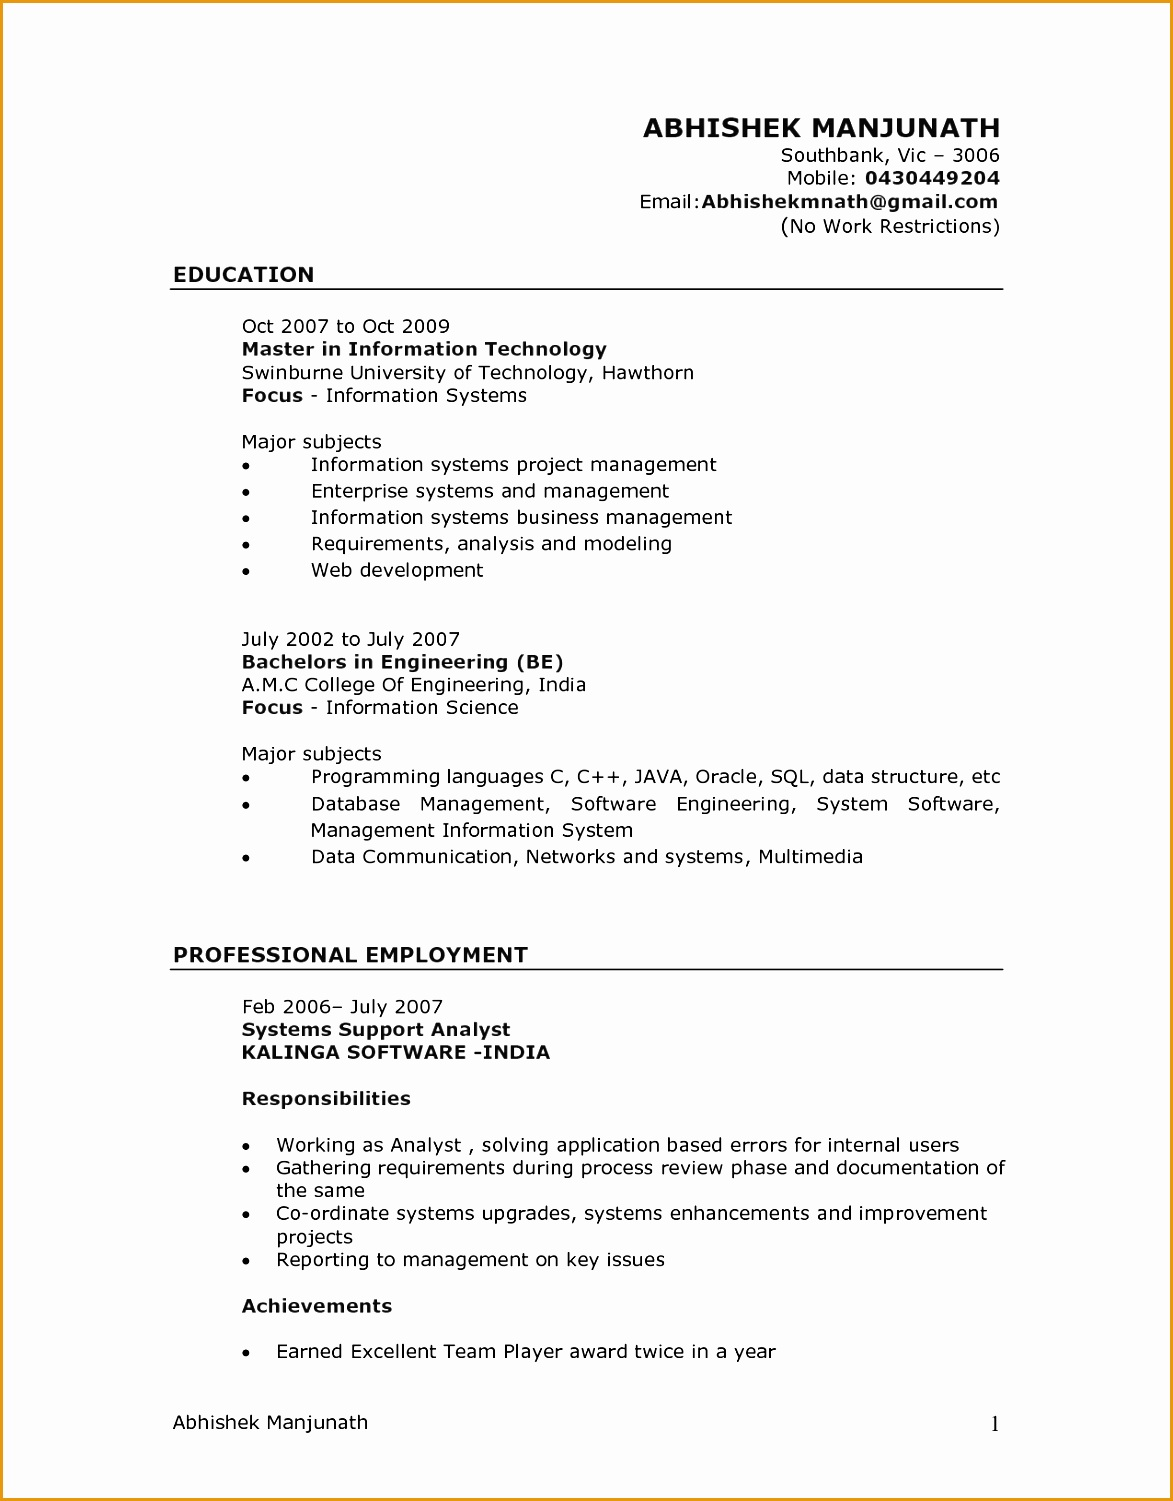 Professional Resume Samples In Word Format 9 Sample Nursing Curriculum Vitae Templates Free Samples